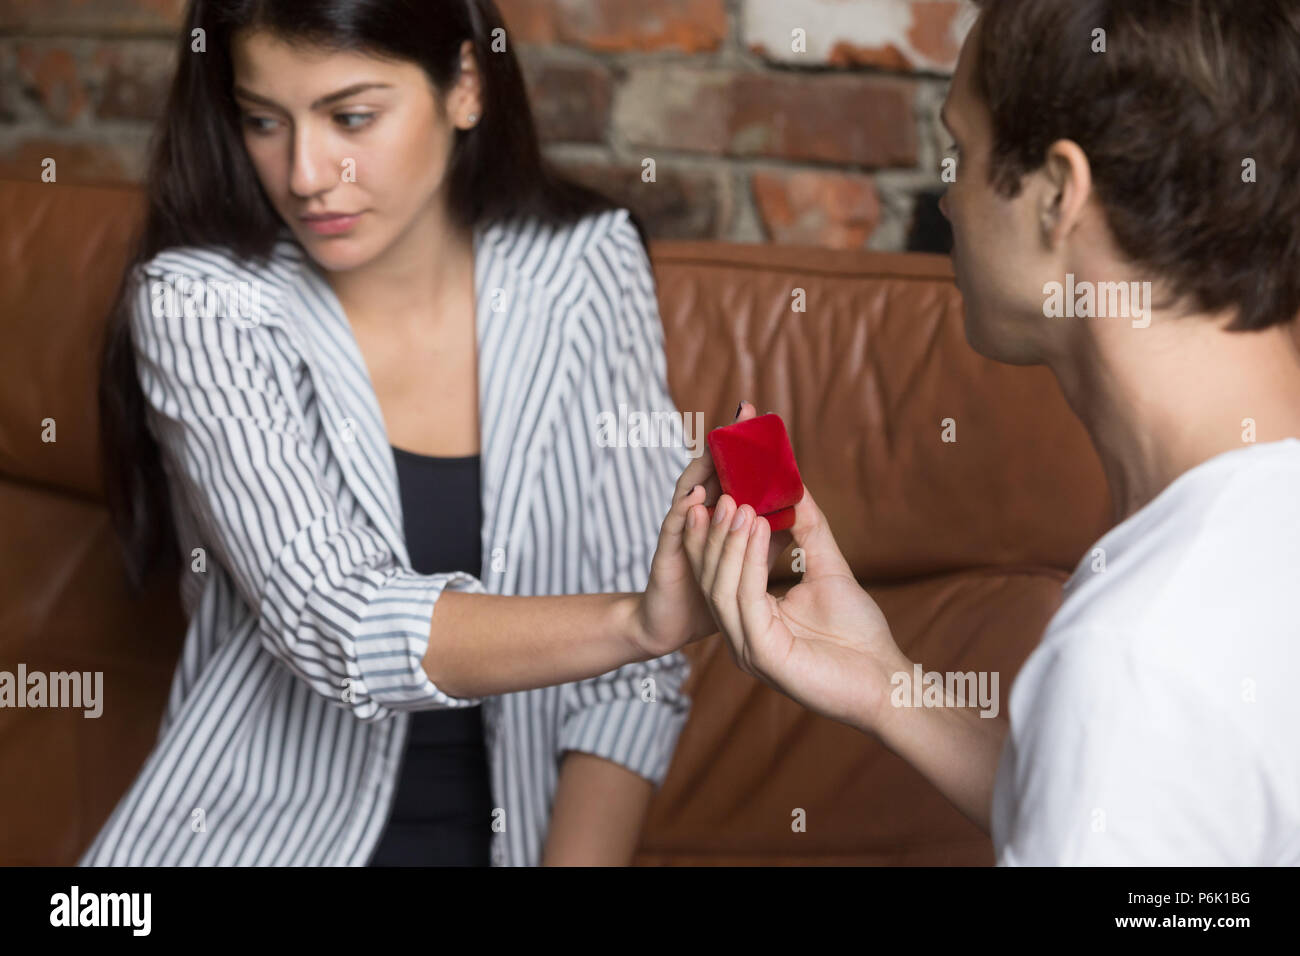 Unhappy girl refusing to marriage proposal of boyfriend - Stock Image